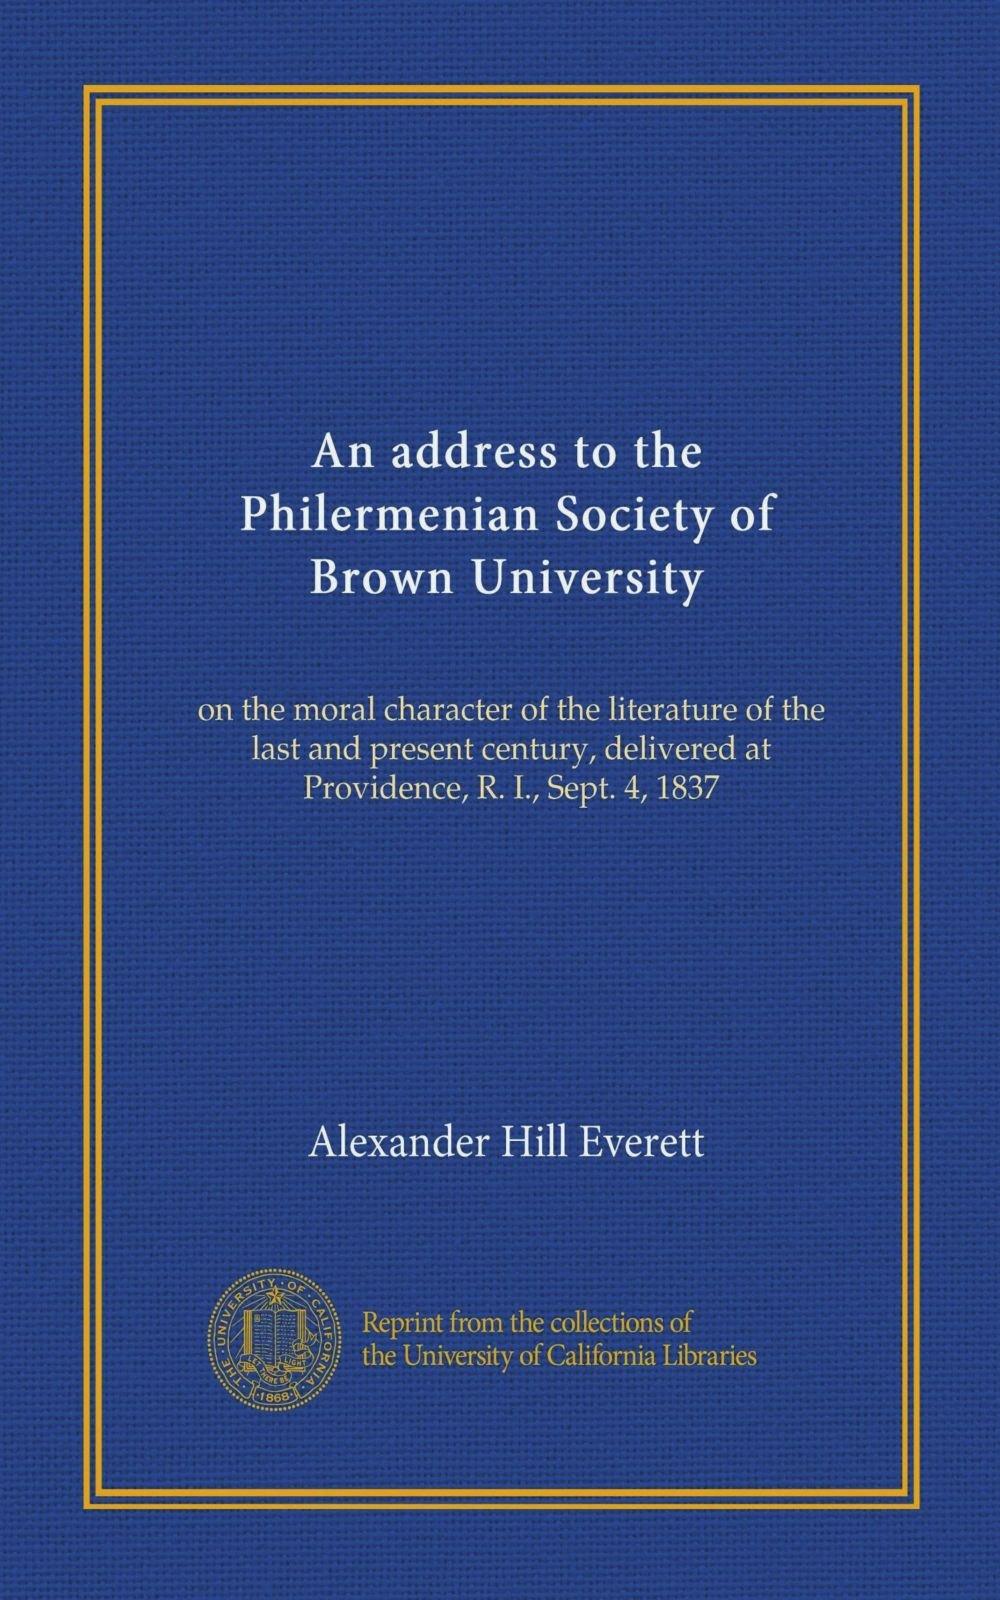 Download An address to the Philermenian Society of Brown University: on the moral character of the literature of the last and present century, delivered at Providence, R. I., Sept. 4, 1837 PDF